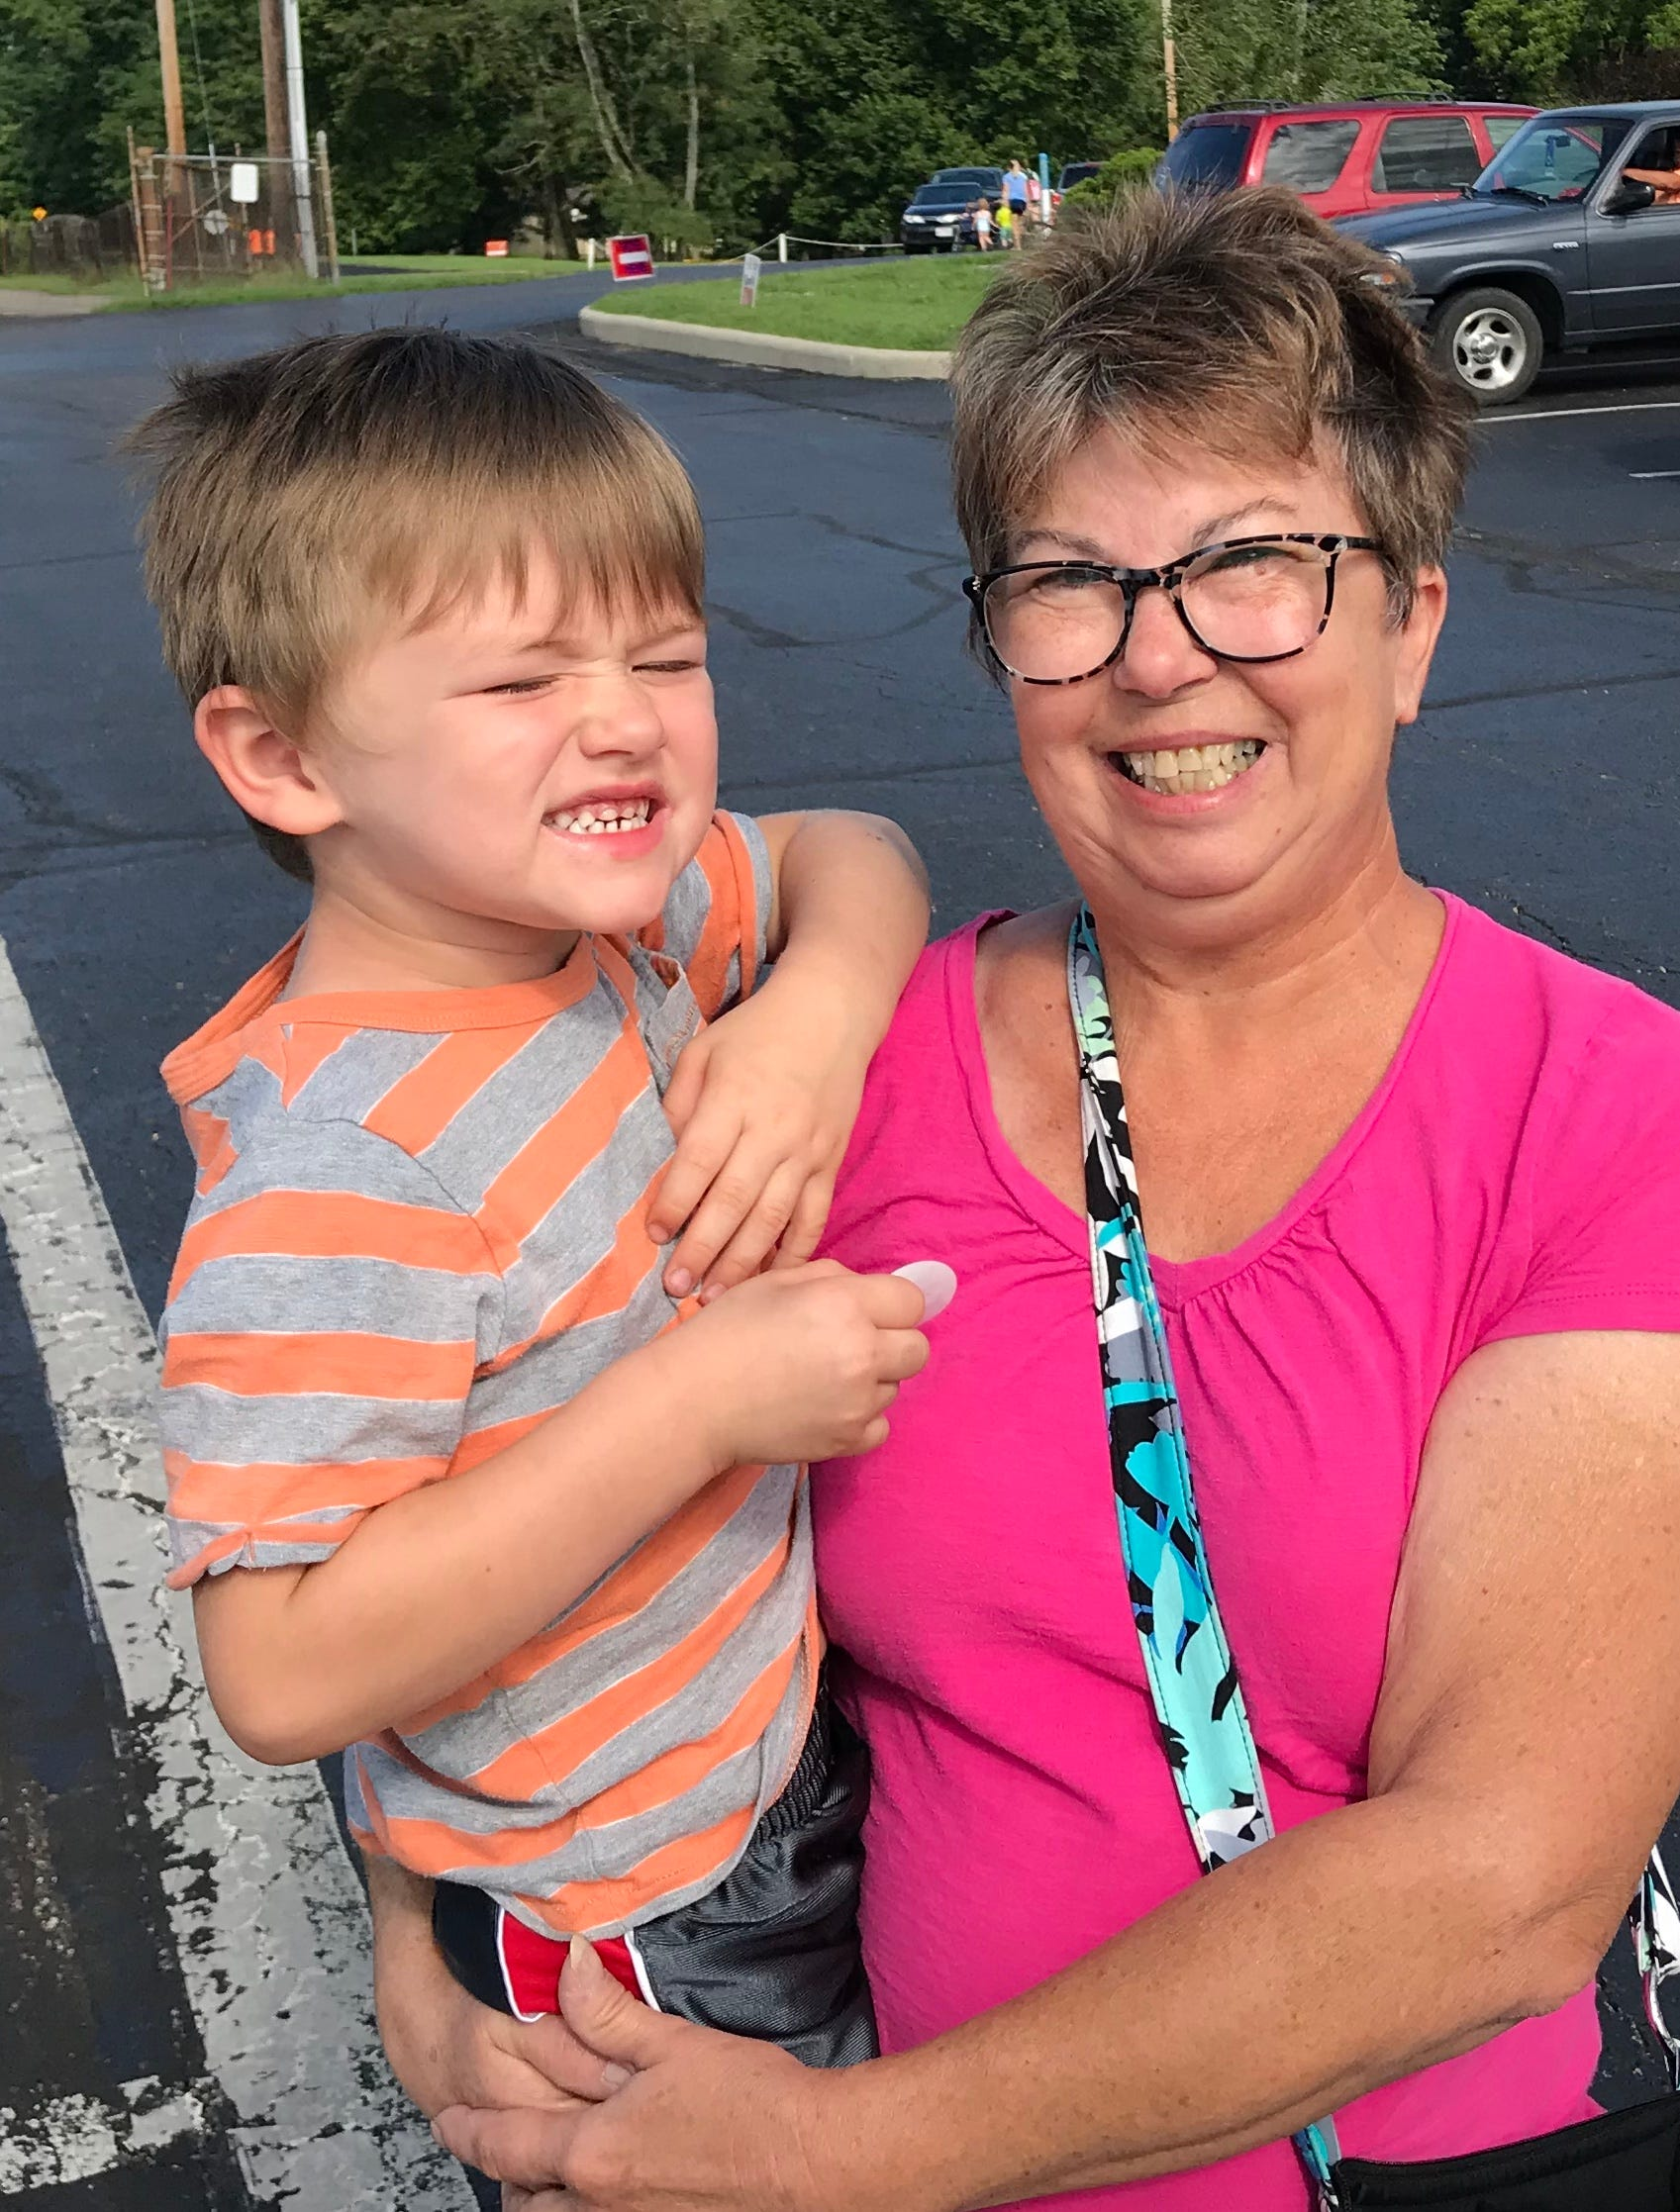 Patricia Hughes, with her grandson, after voting in Newark,. Ohio on Aug. 7 2018.